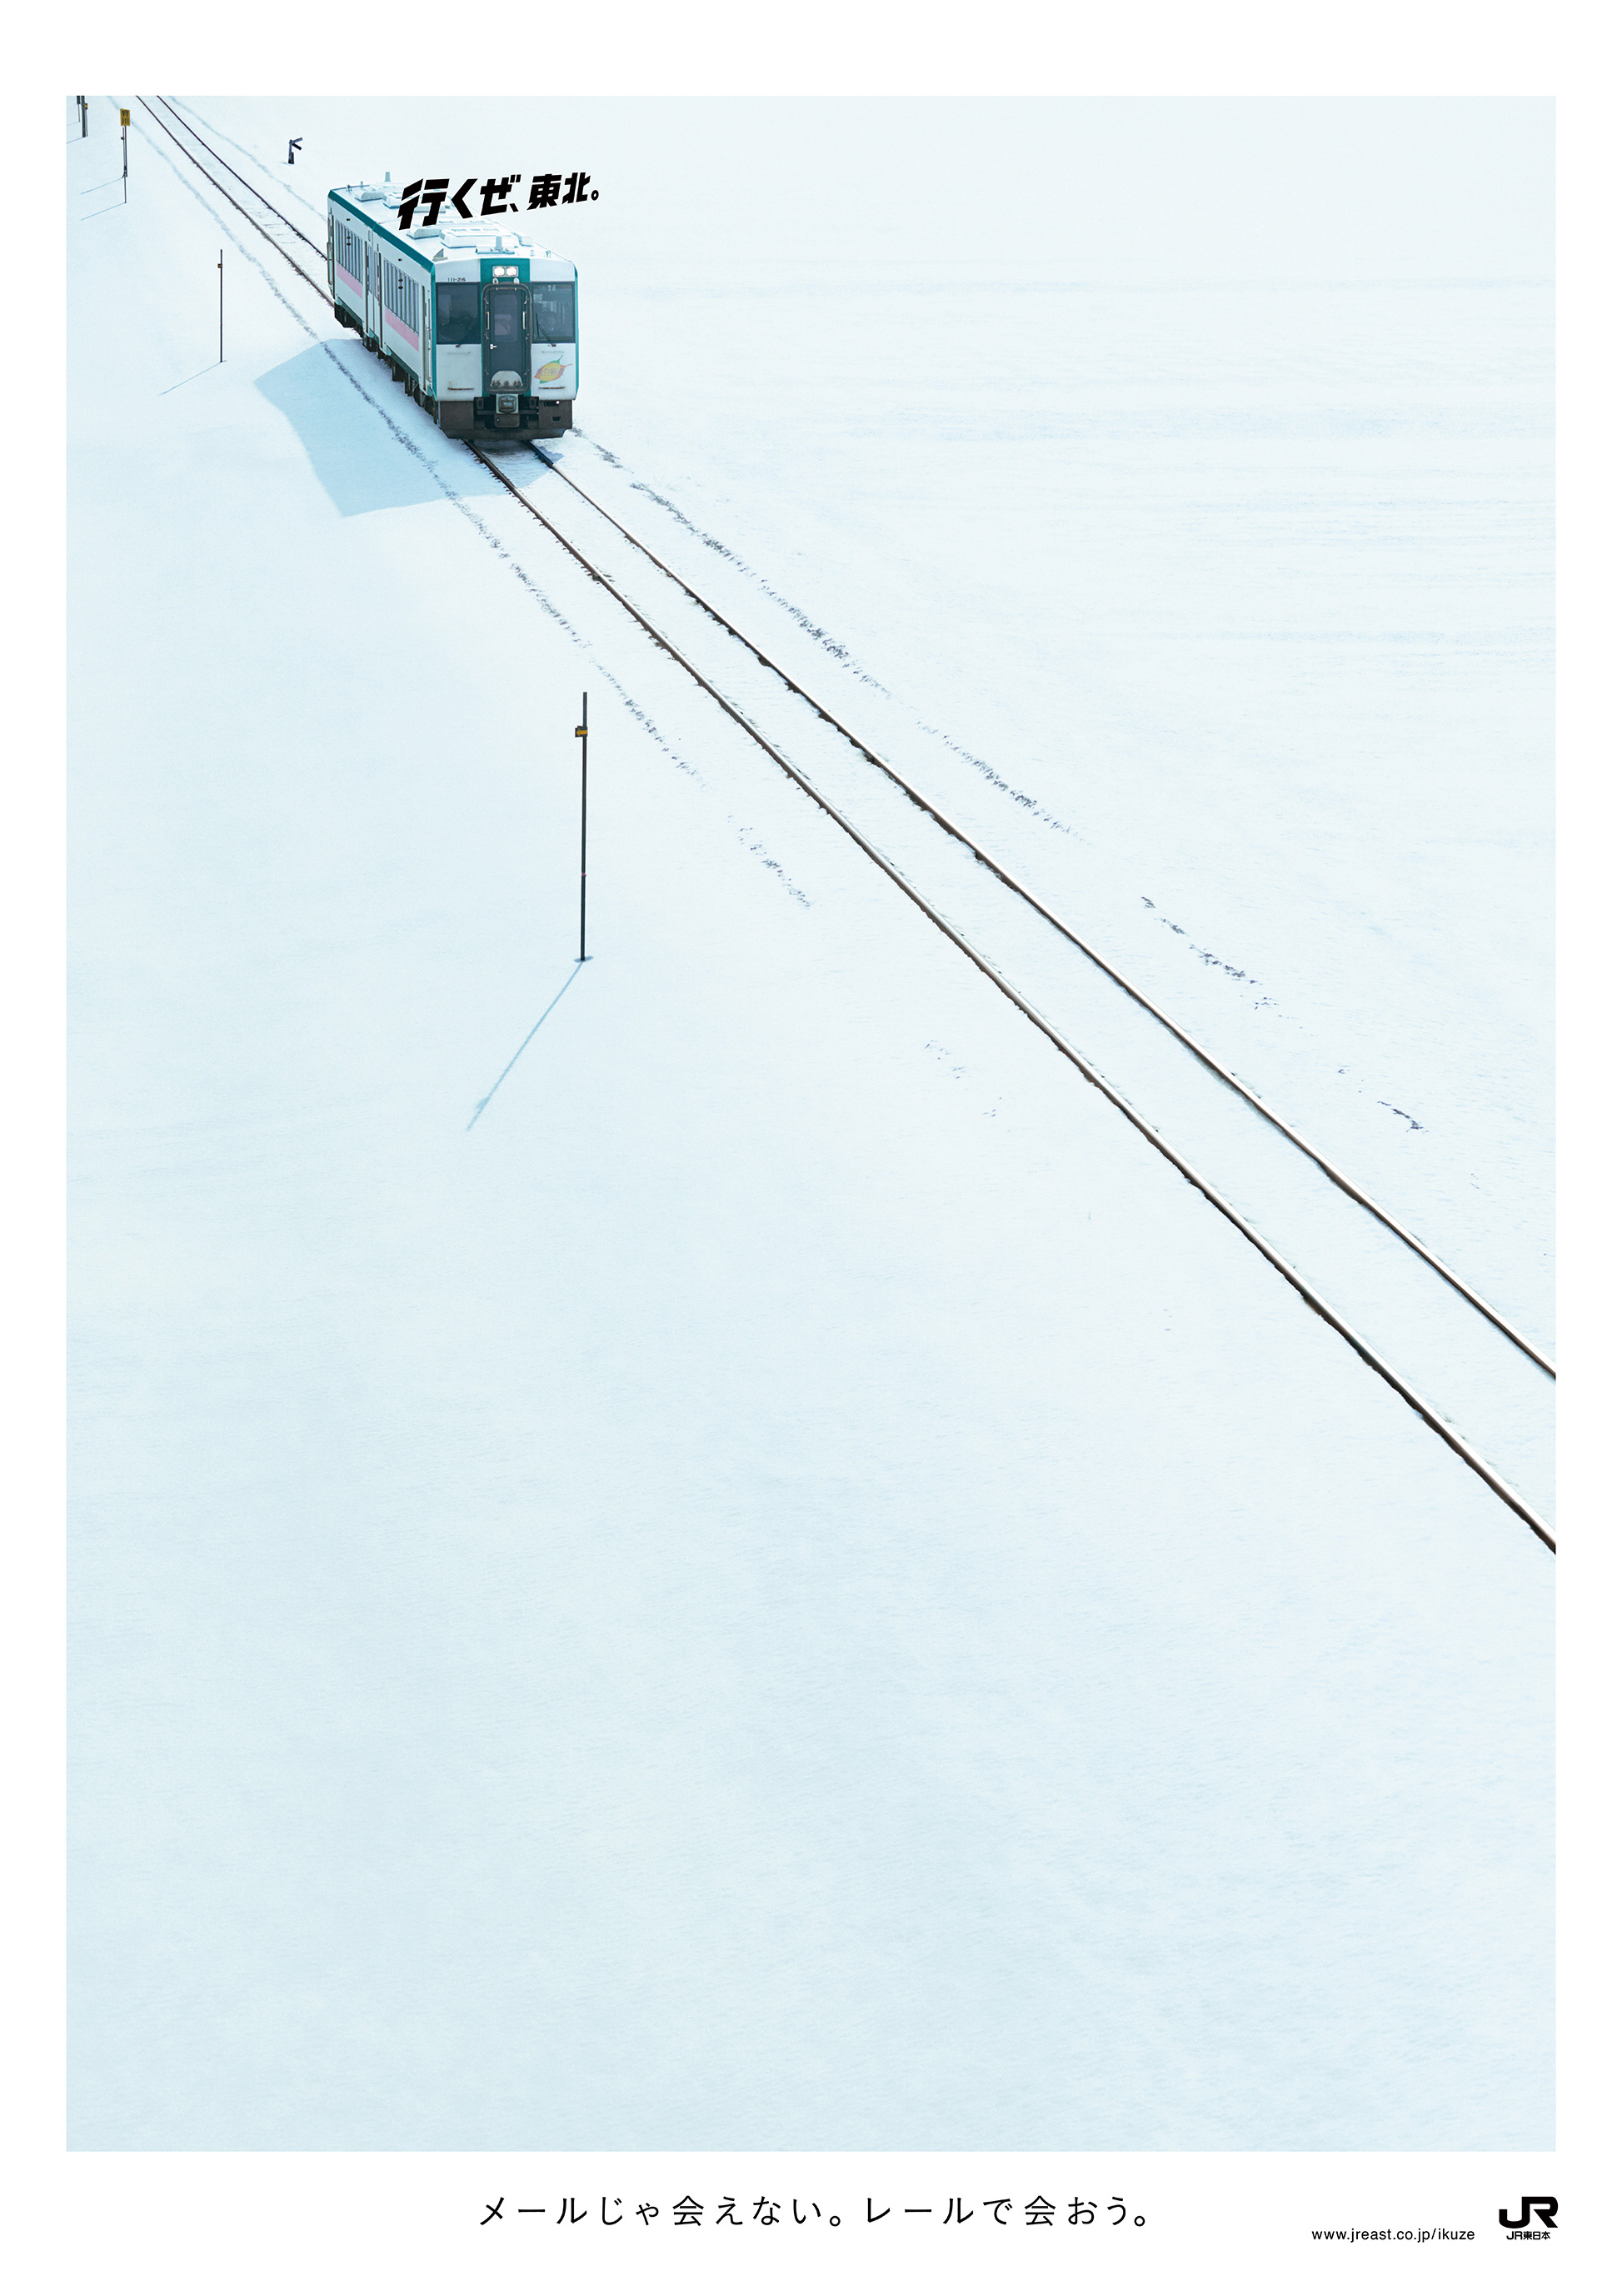 12.JR_ikuze_2015_winter1_B1_train_151006ol